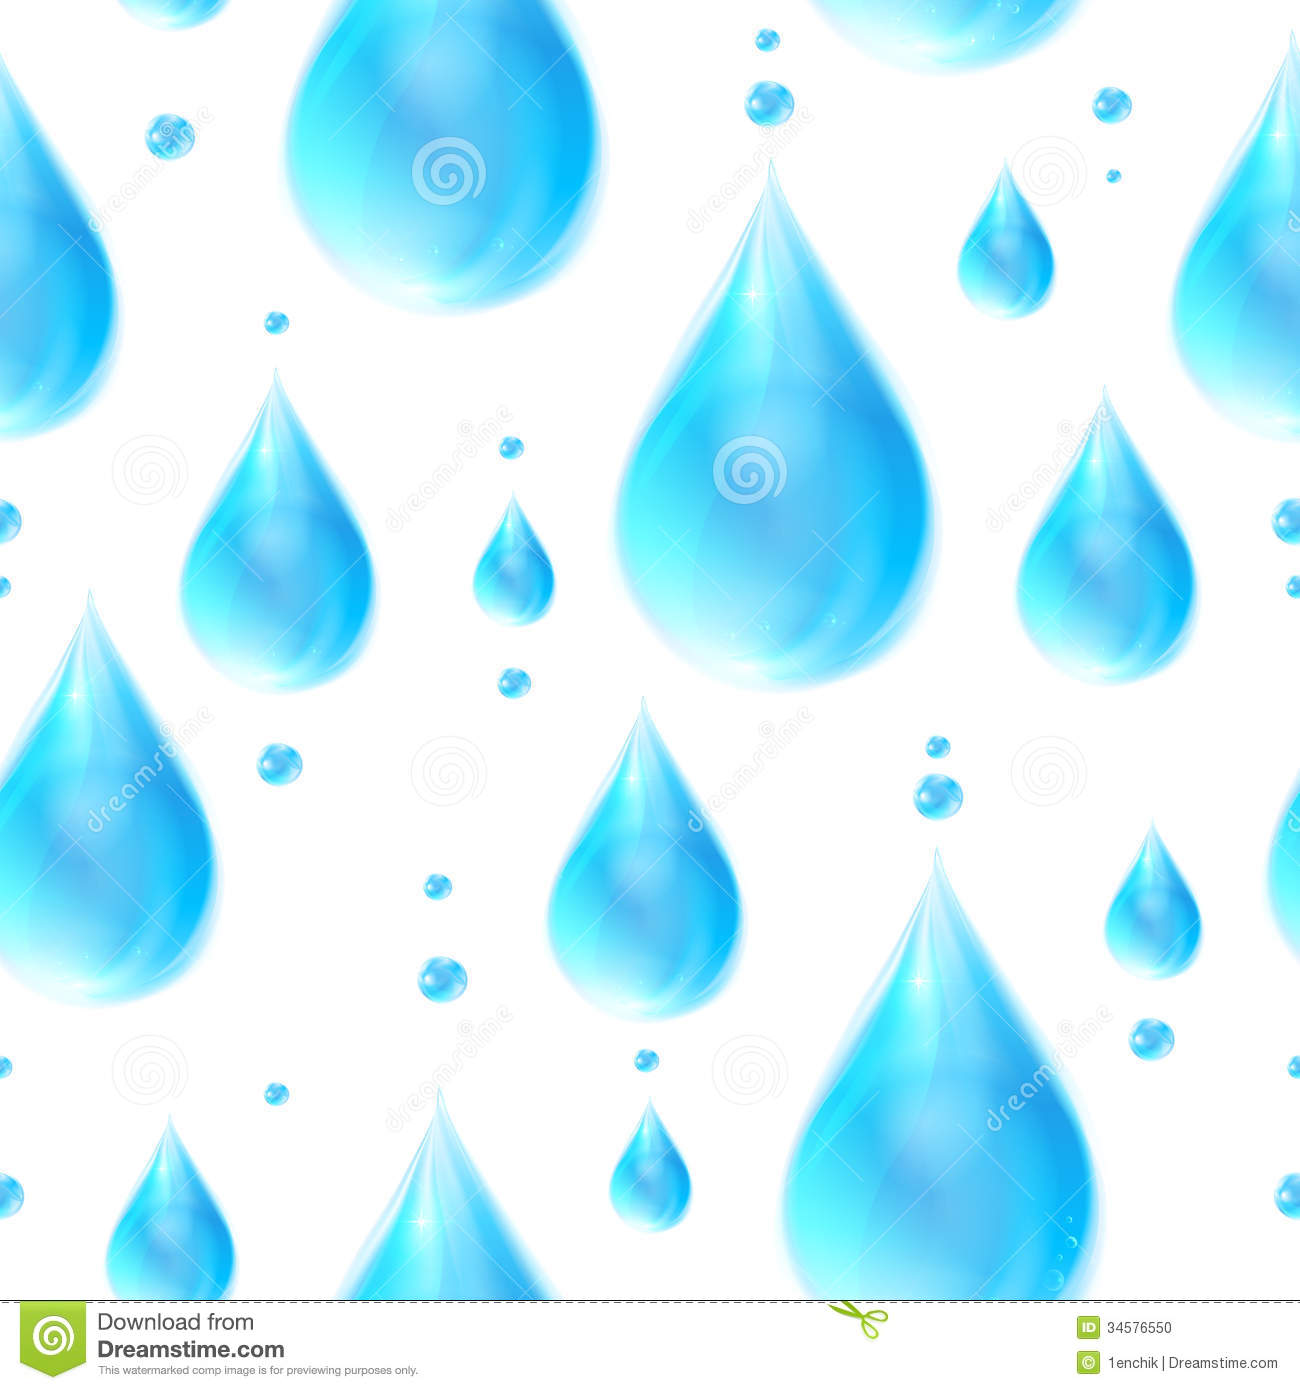 hight resolution of raindrop clipart wallpaper royalty free library